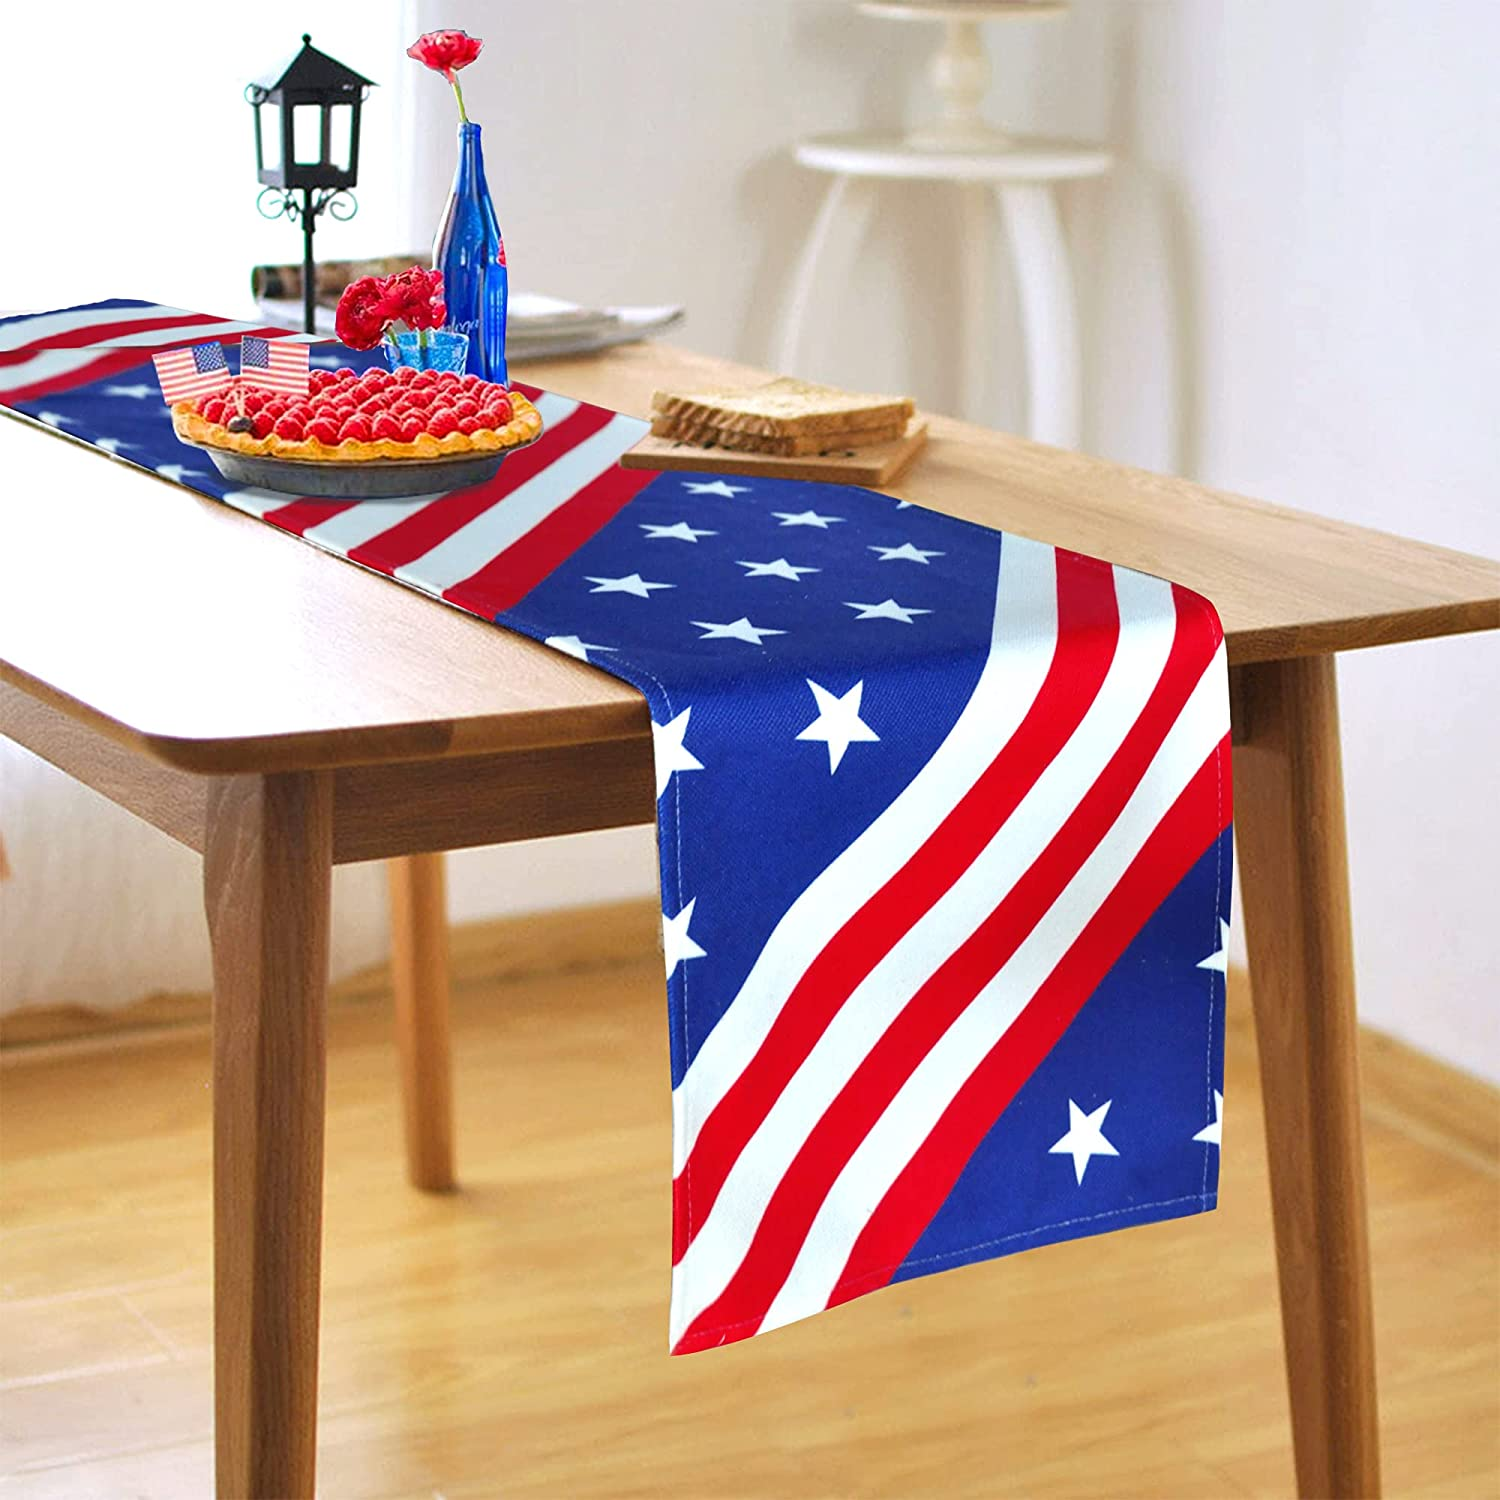 Anms [Alternative dealer] Patriotic Decor Table Runner Ame July of 4th Washington Mall